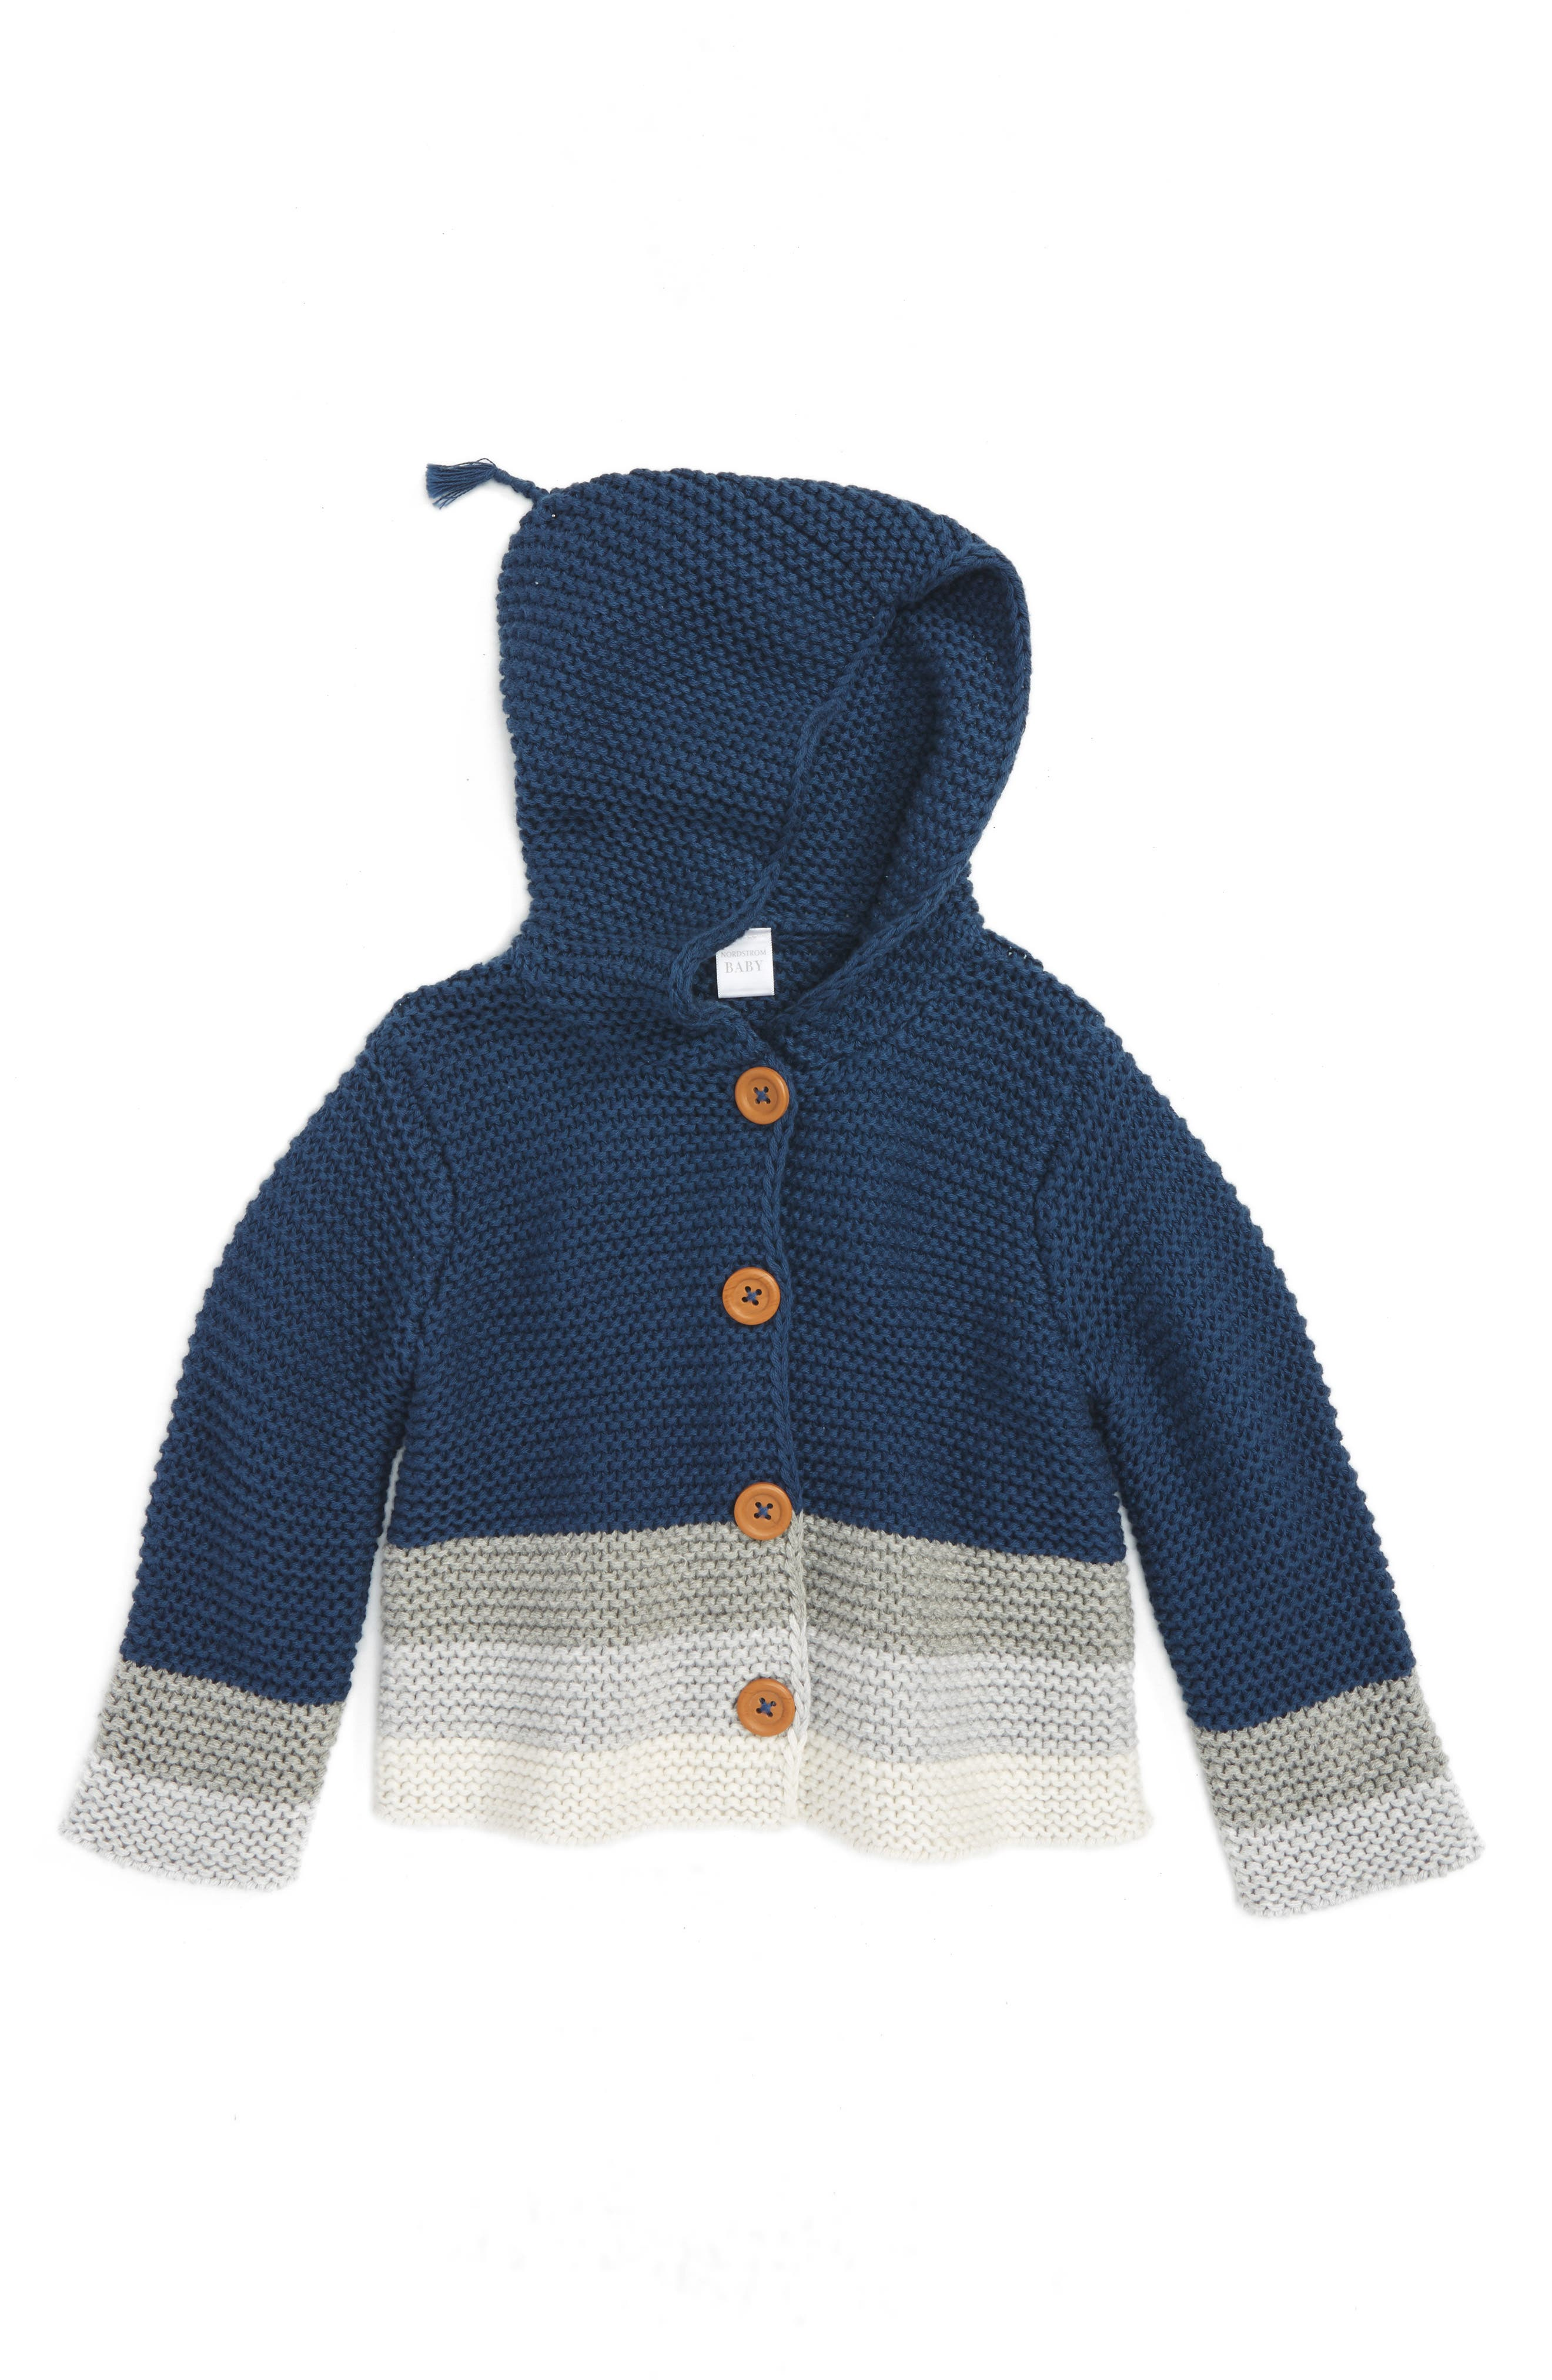 Main Image - Nordstrom Baby Organic Cotton Knit Hoodie (Baby Boys)